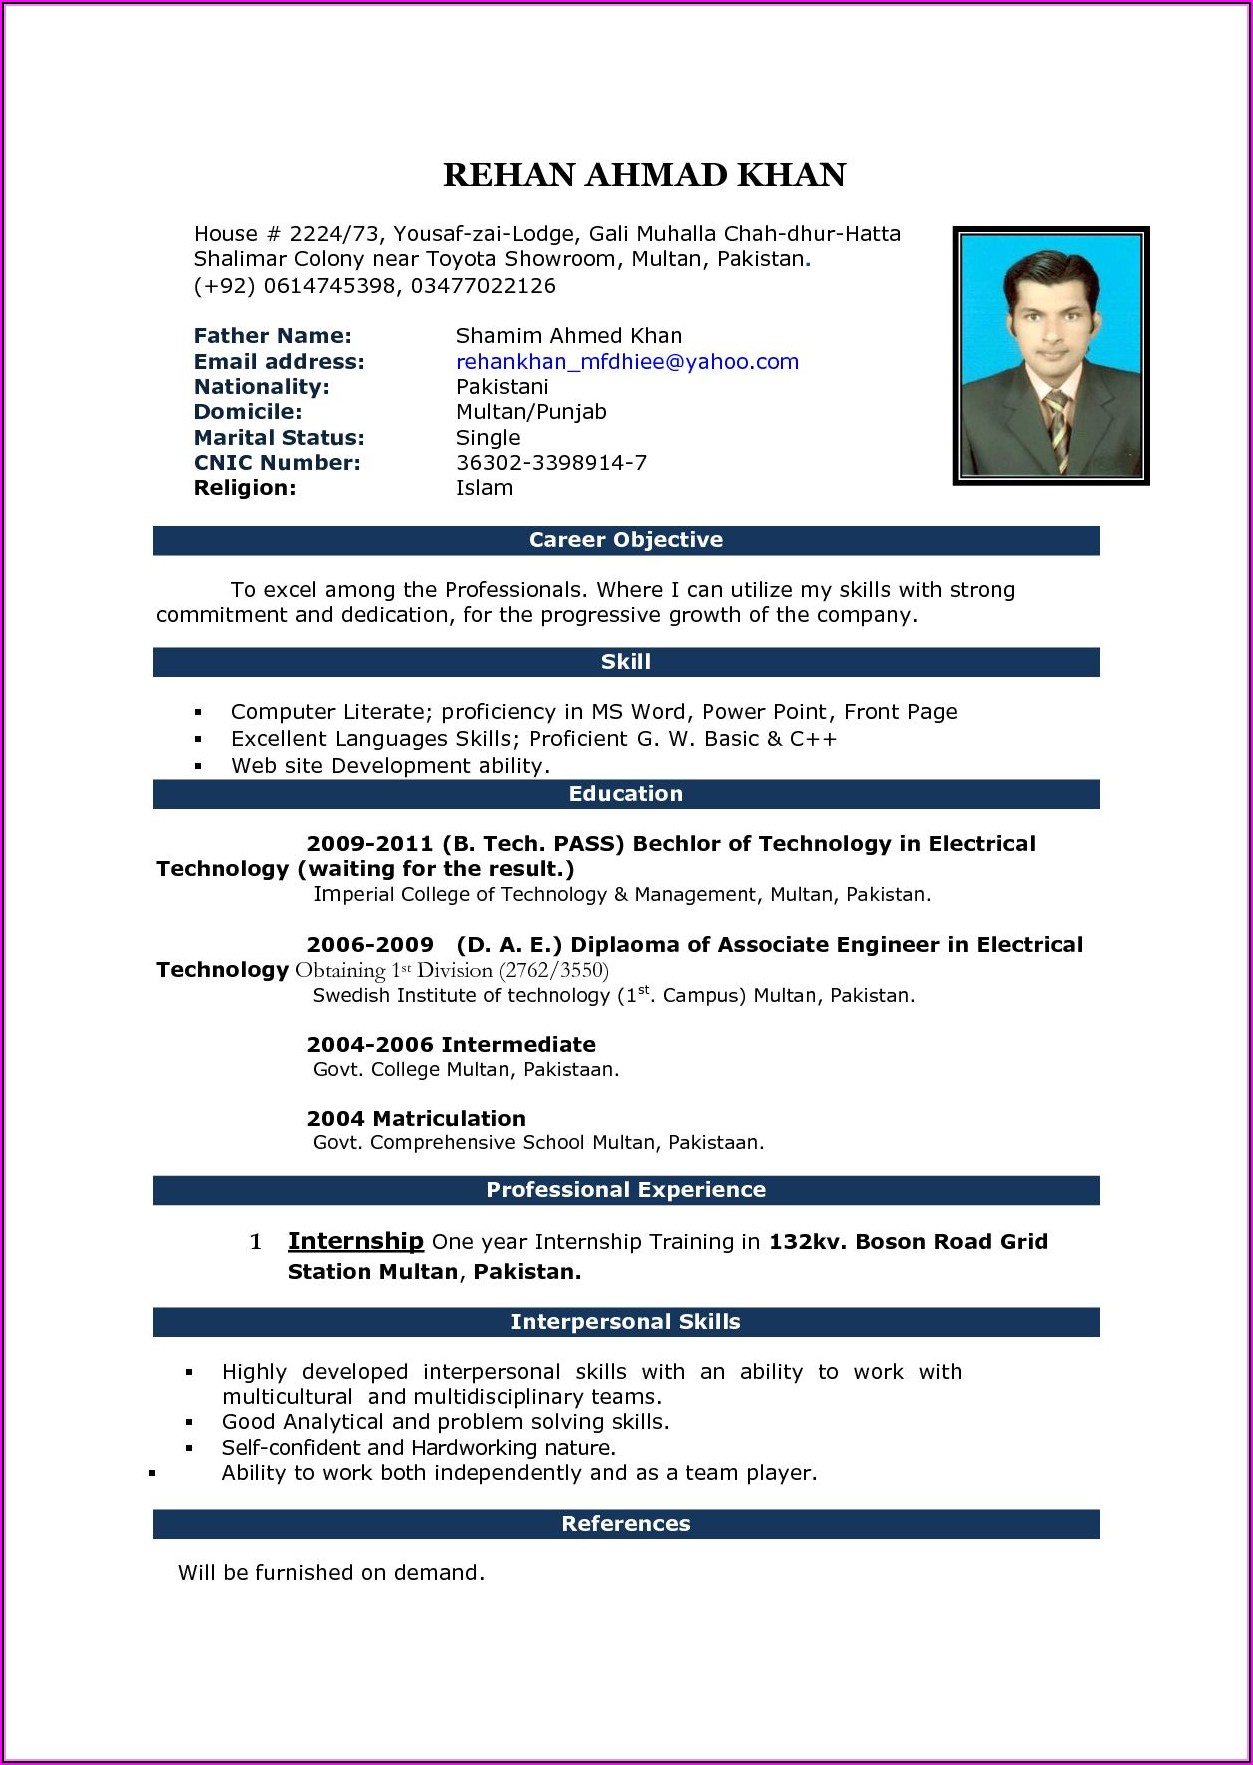 Ms Office Resume Maker